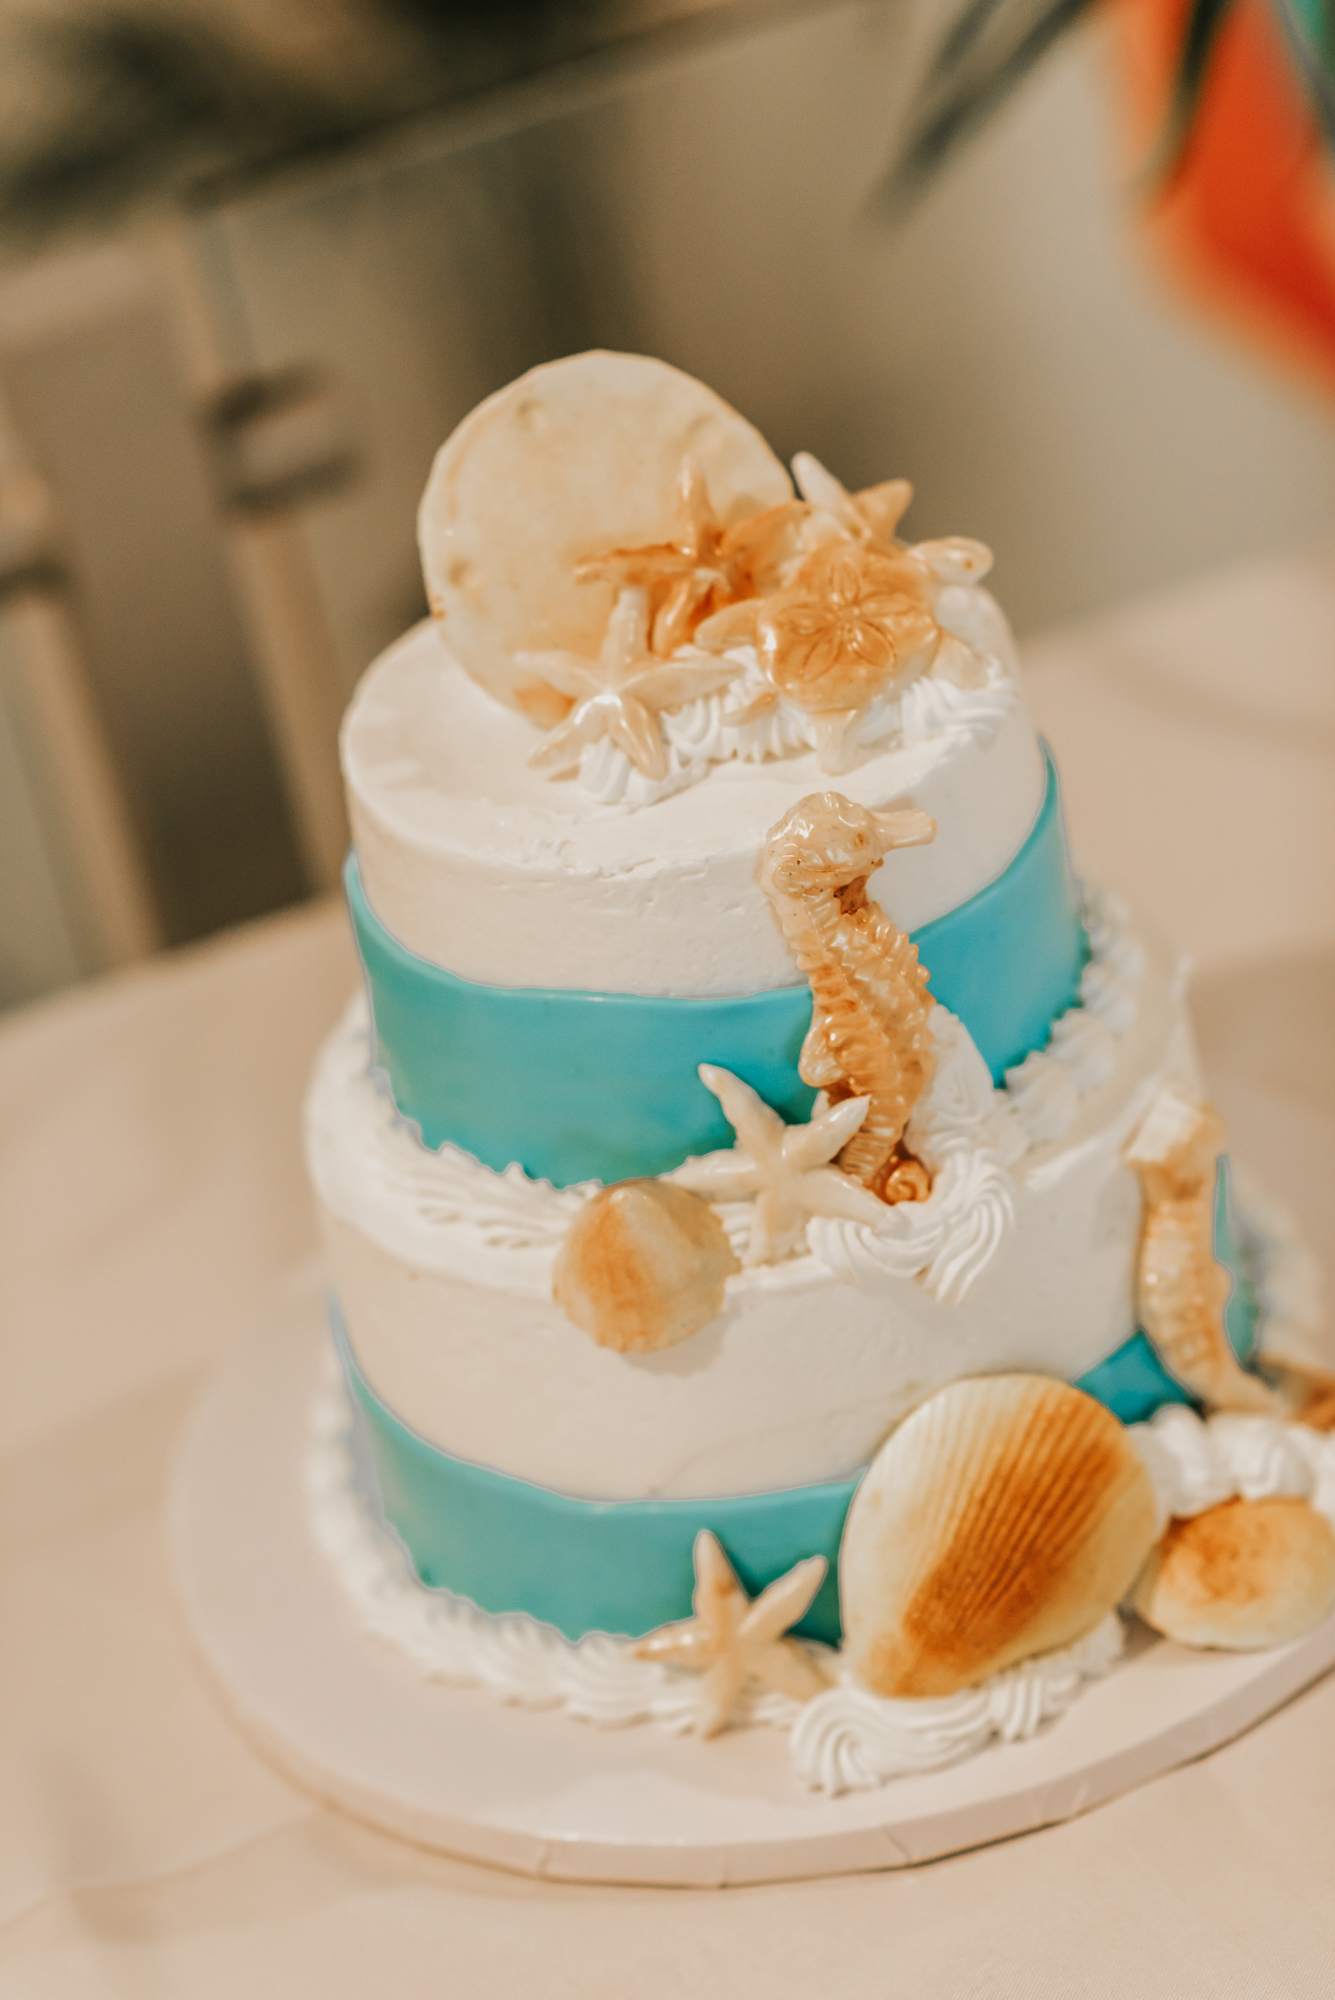 Elana and Marc's wedding cake was adorned with seashells and pineapple jam. Photo by Regina Rached.